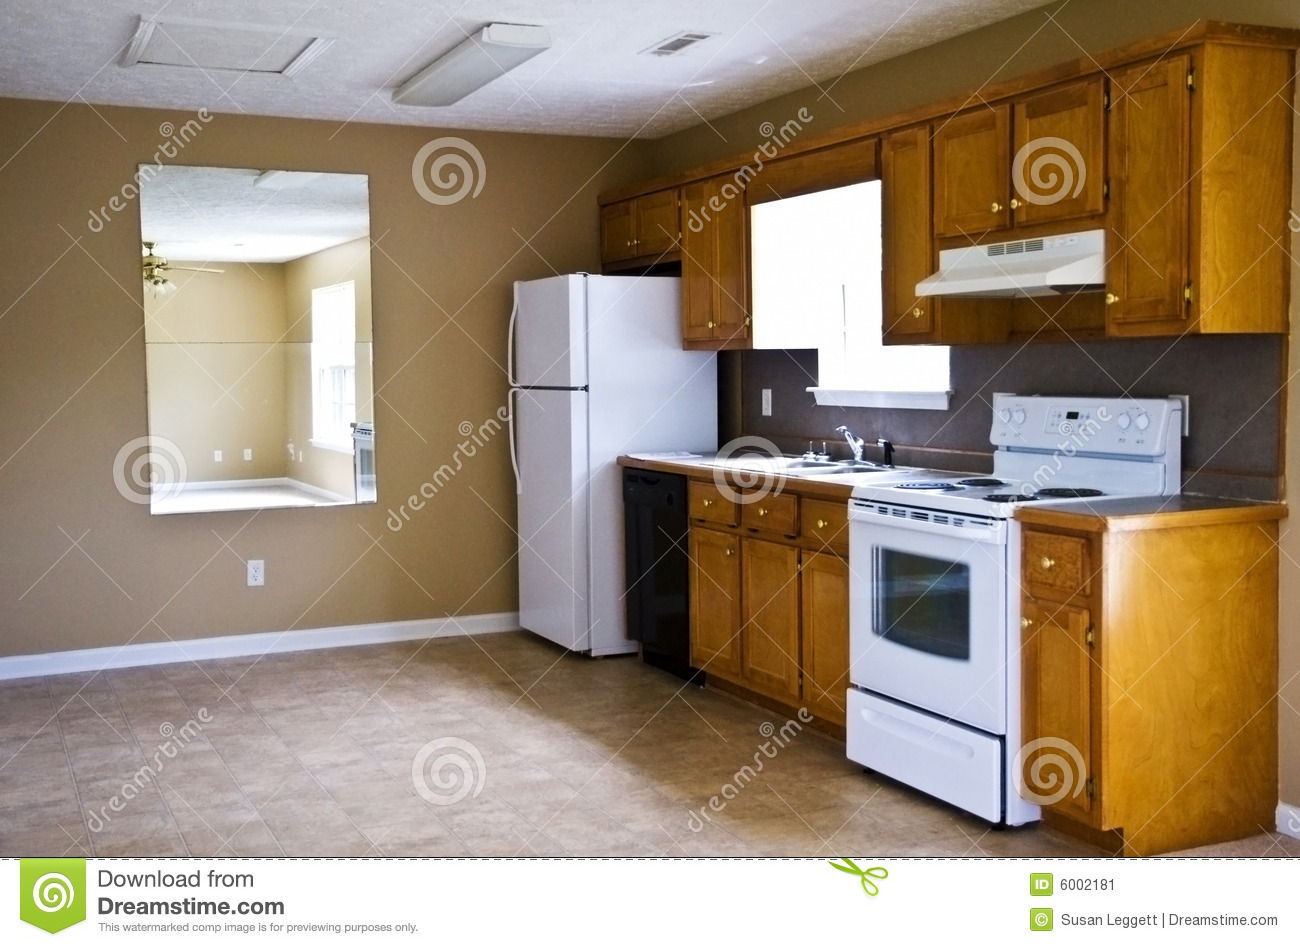 Compact KitchenSmall House Stock Image  Image of ceiling little 6002181